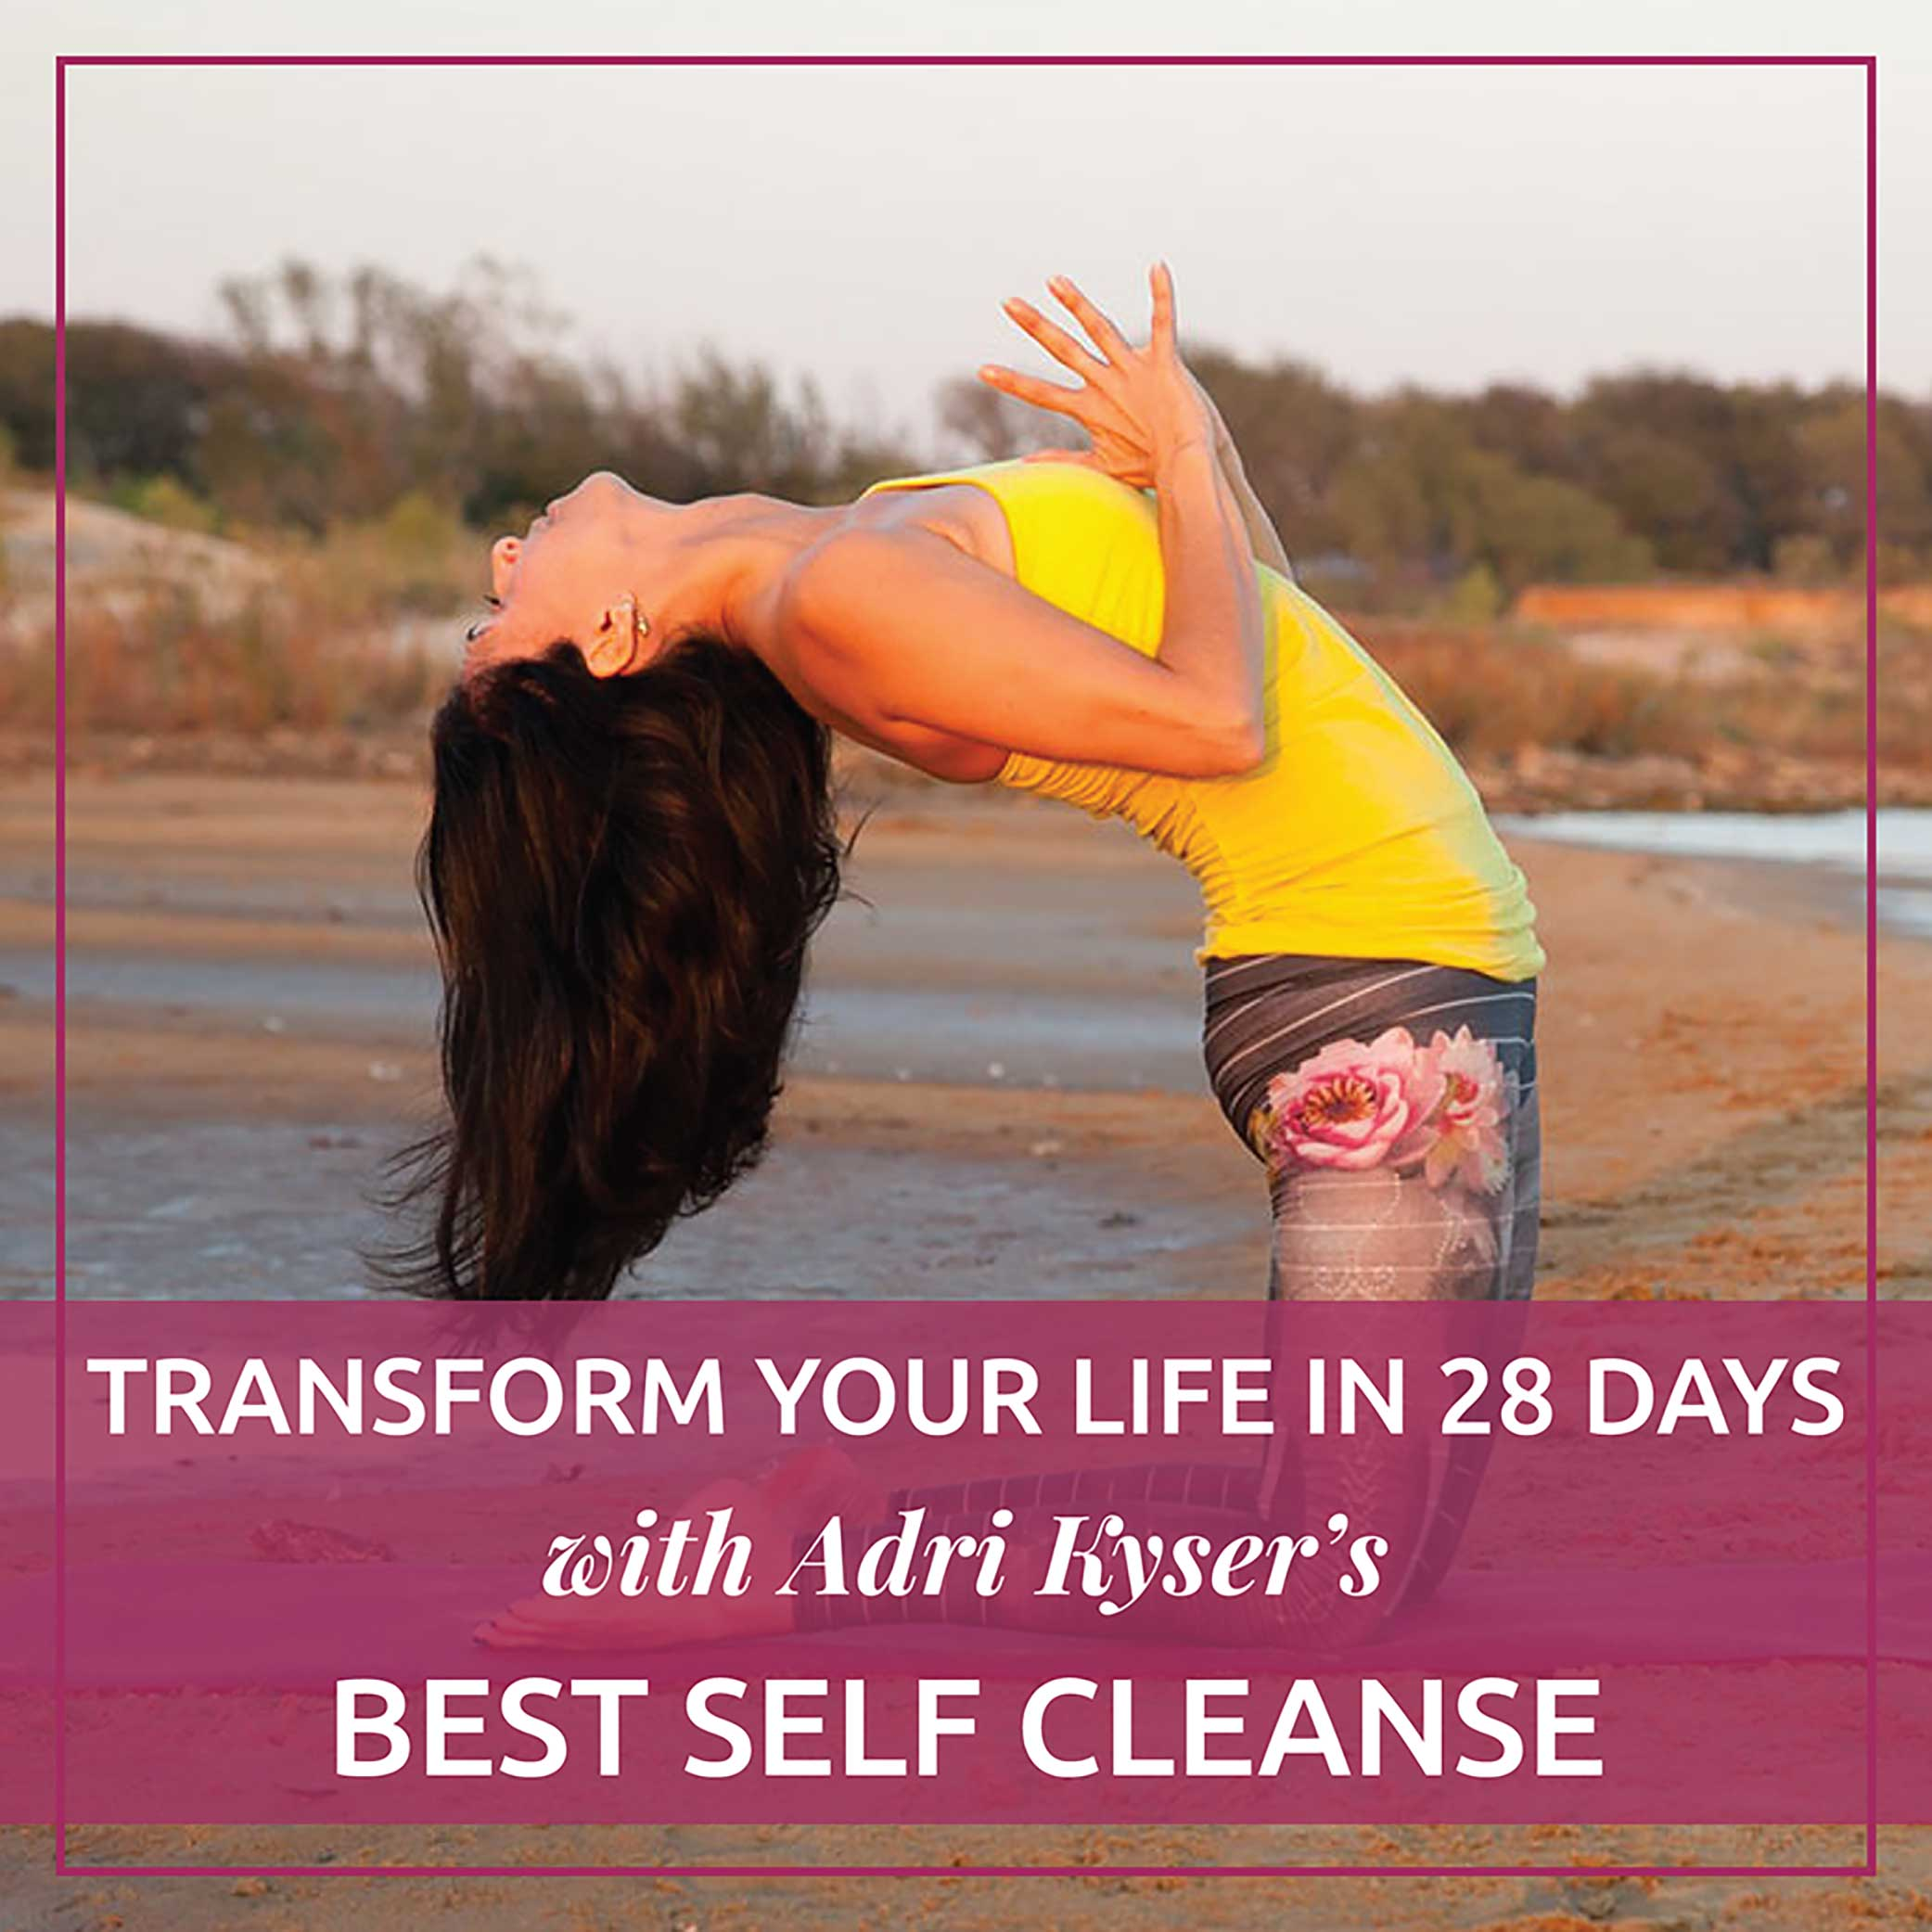 Best Self Cleanse Program | Adri Kyser